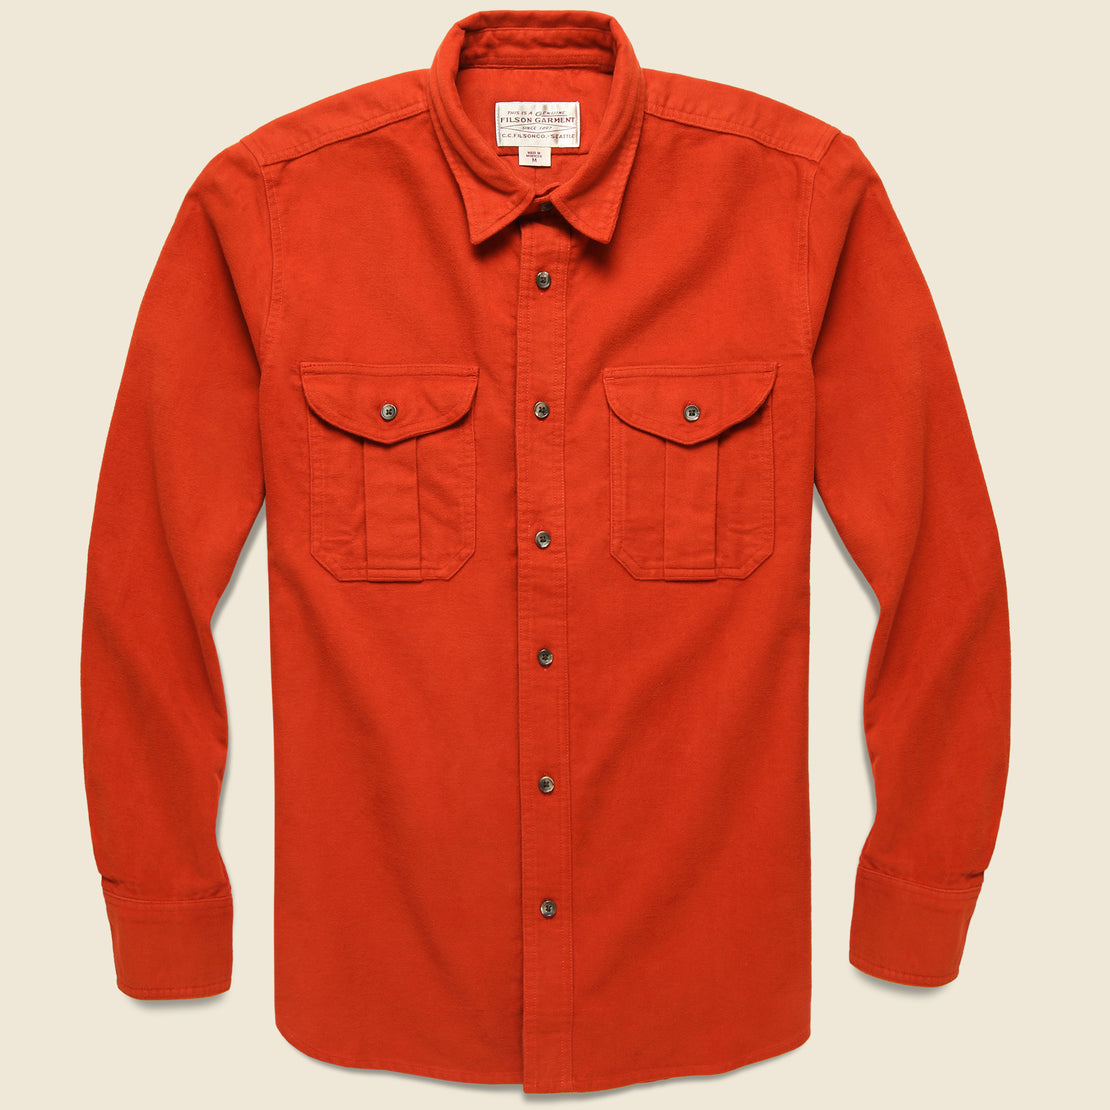 Filson Moleskin Seattle Shirt - Burnt Orange